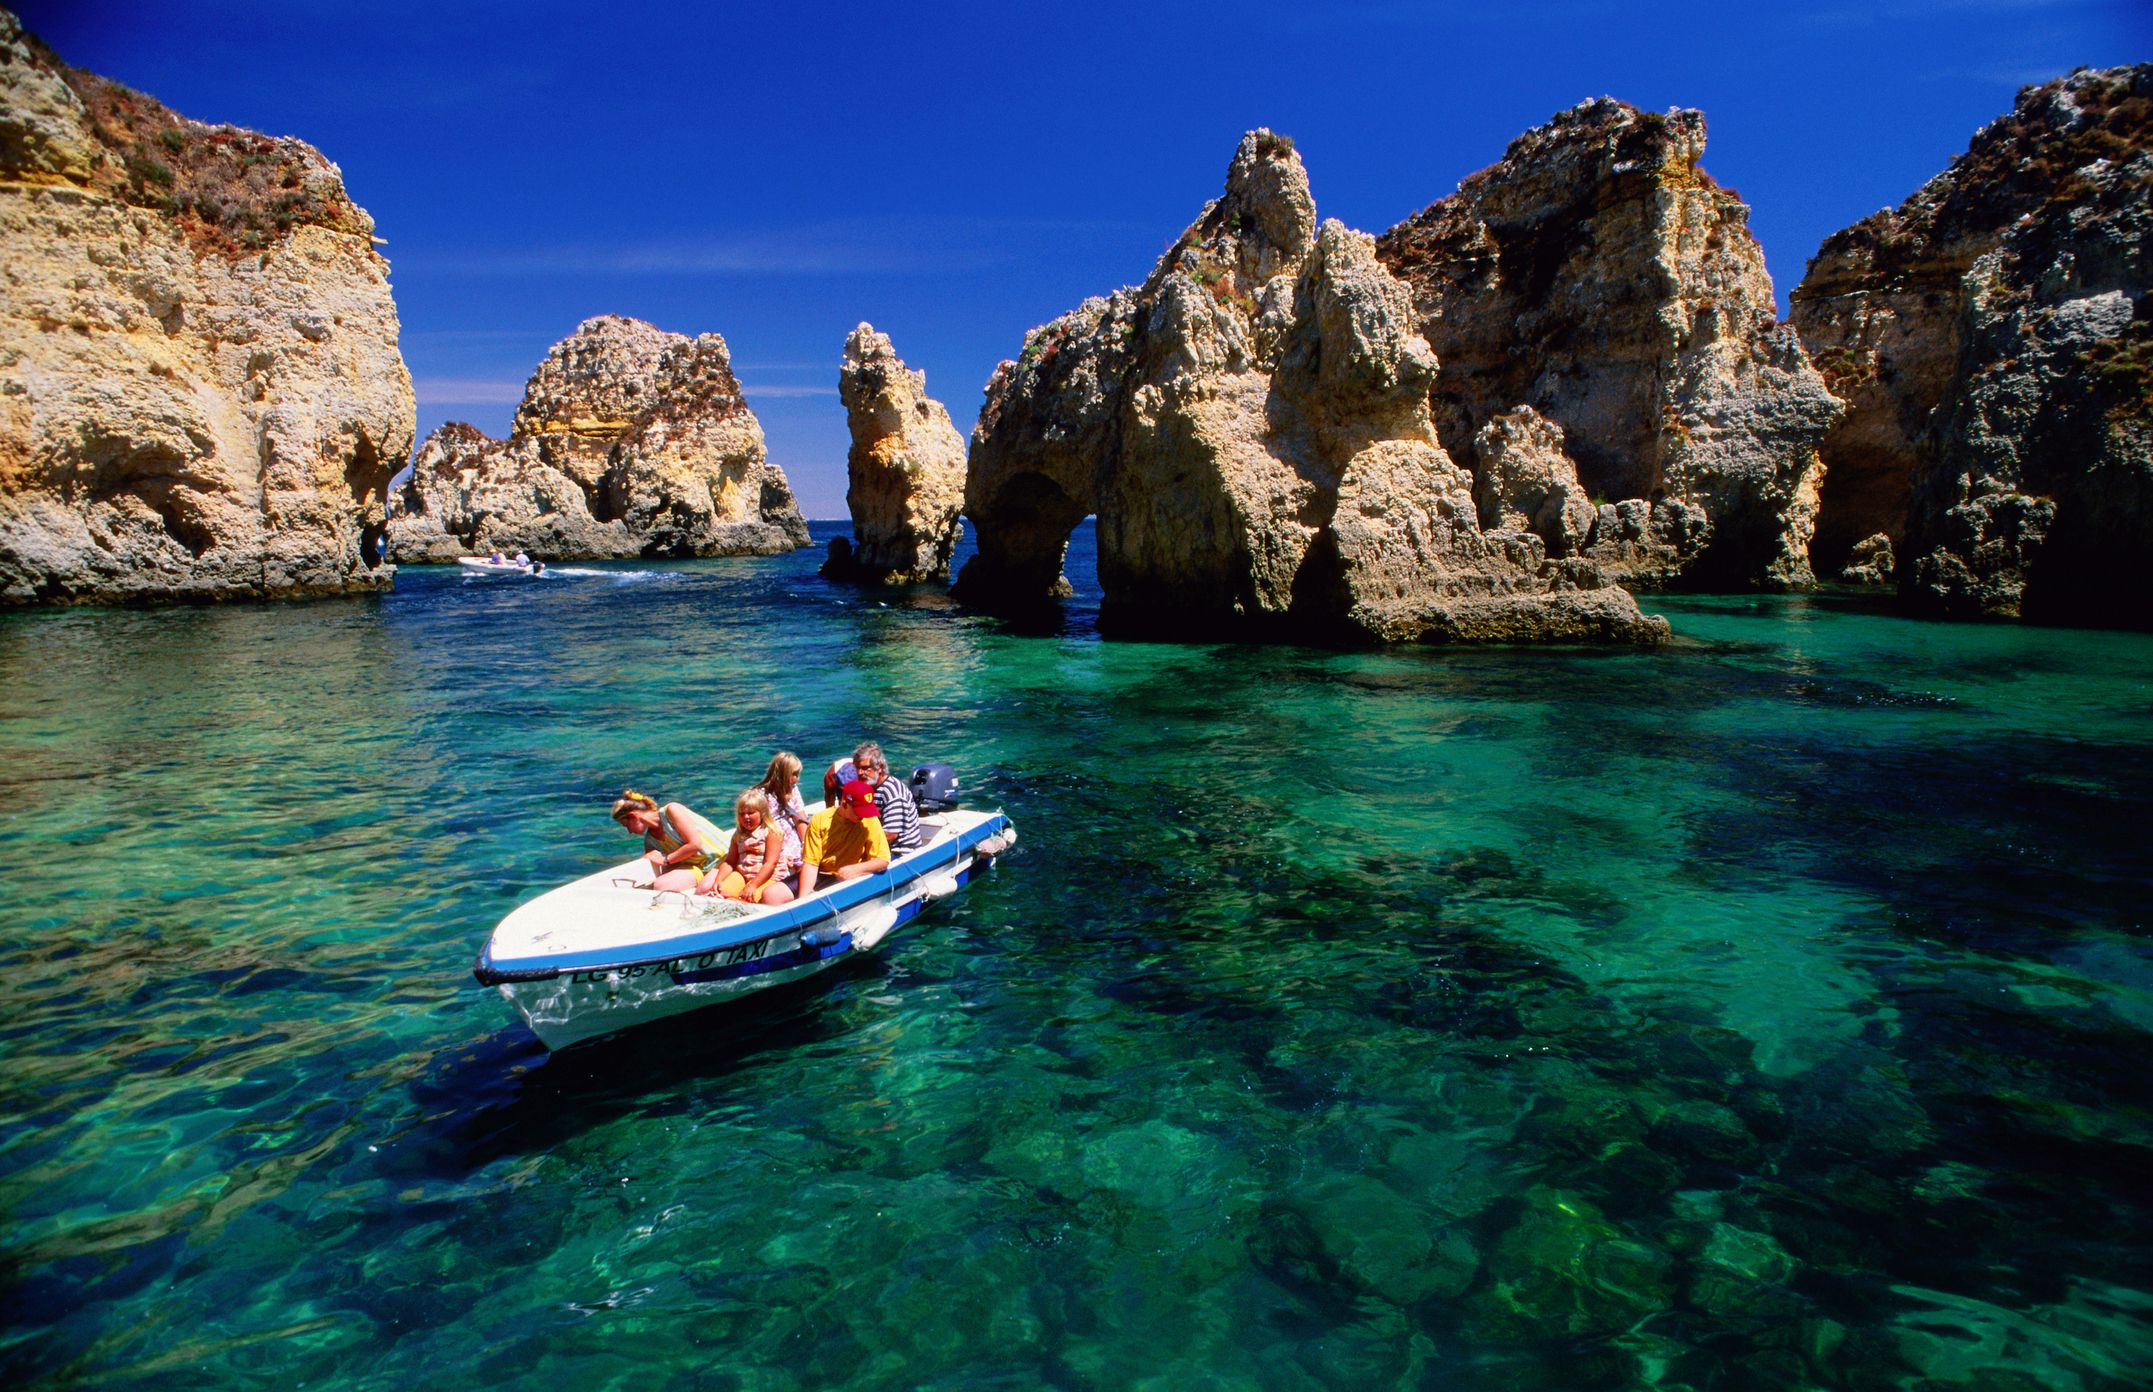 10 Reasons to Book a Trip to the Algarve, Portugal